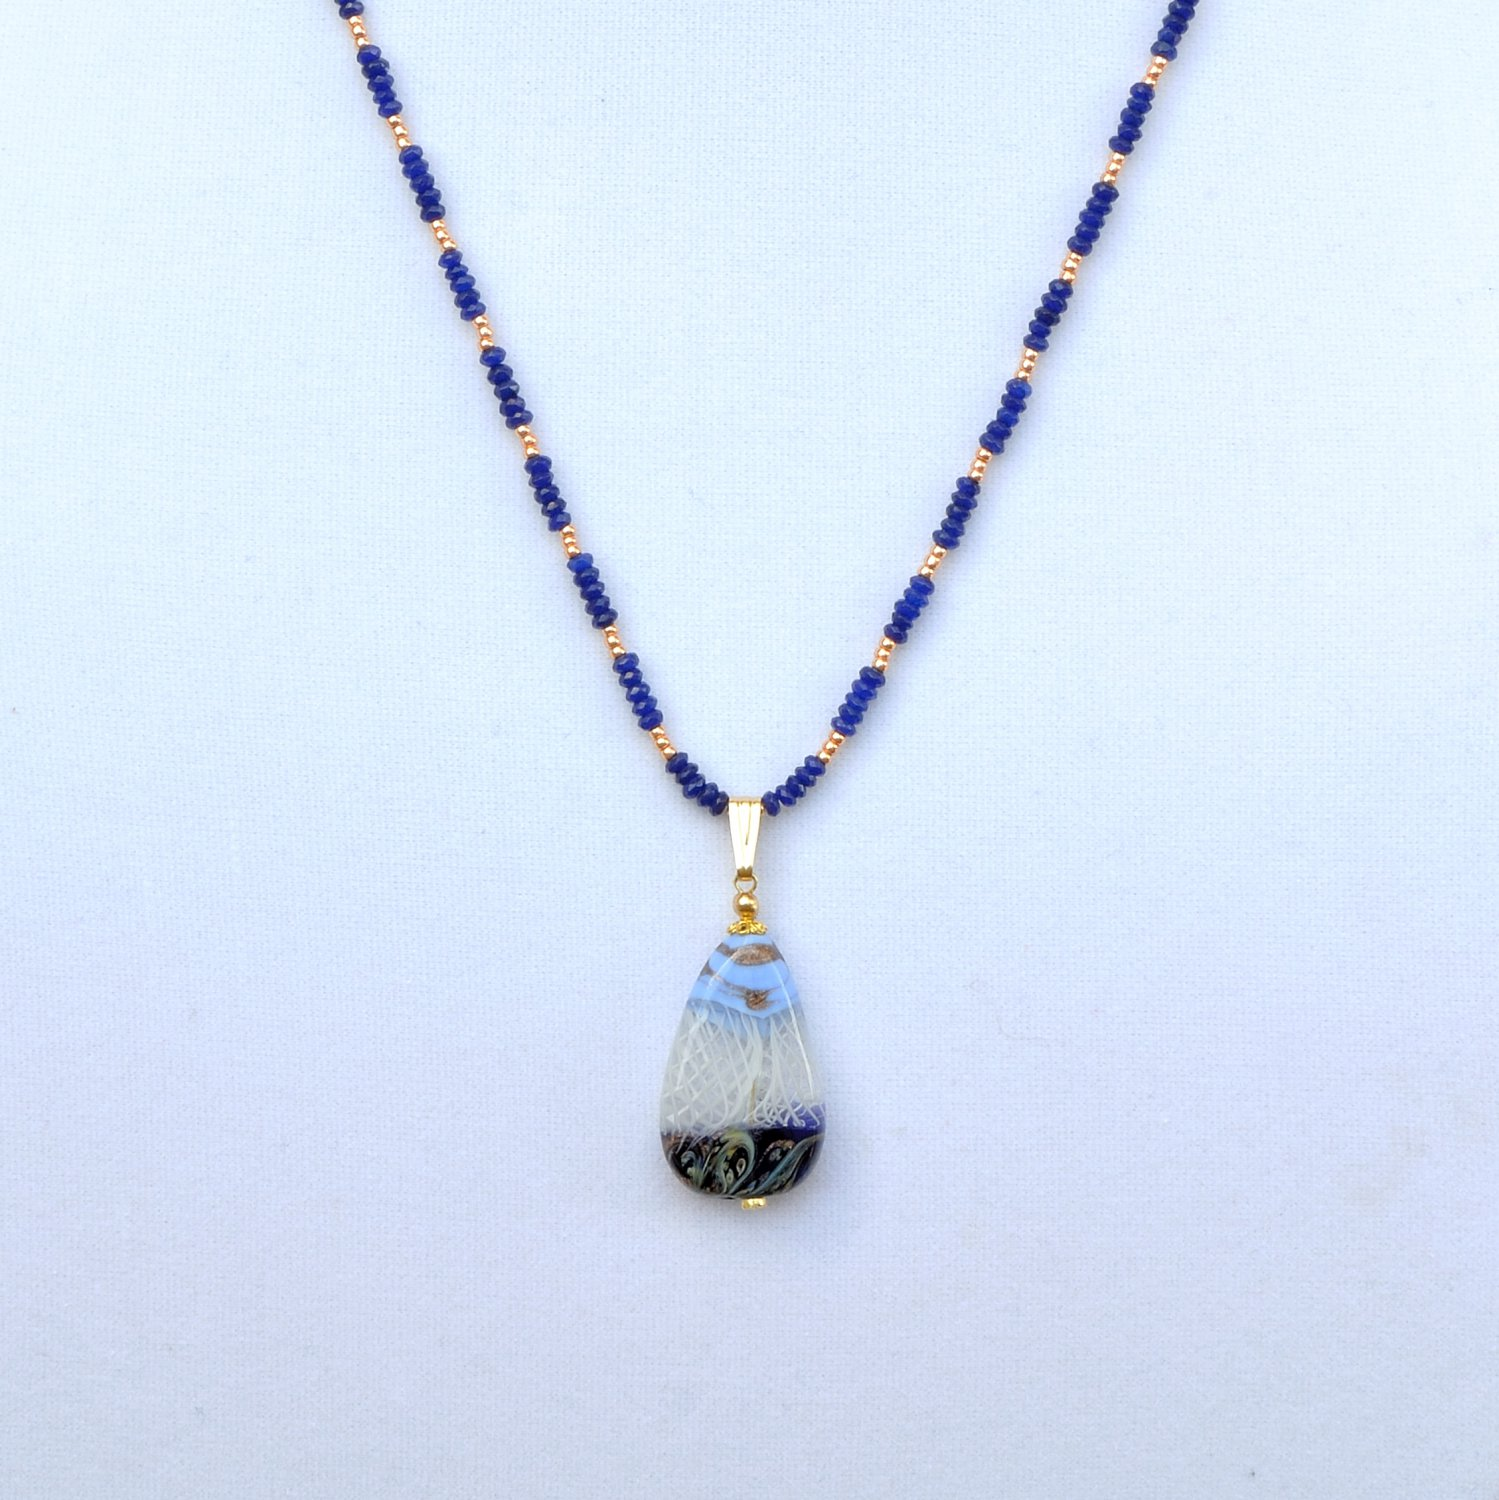 OOAK Blue Jade and Genuine Murano Glass Necklace Pendant Gold Filled